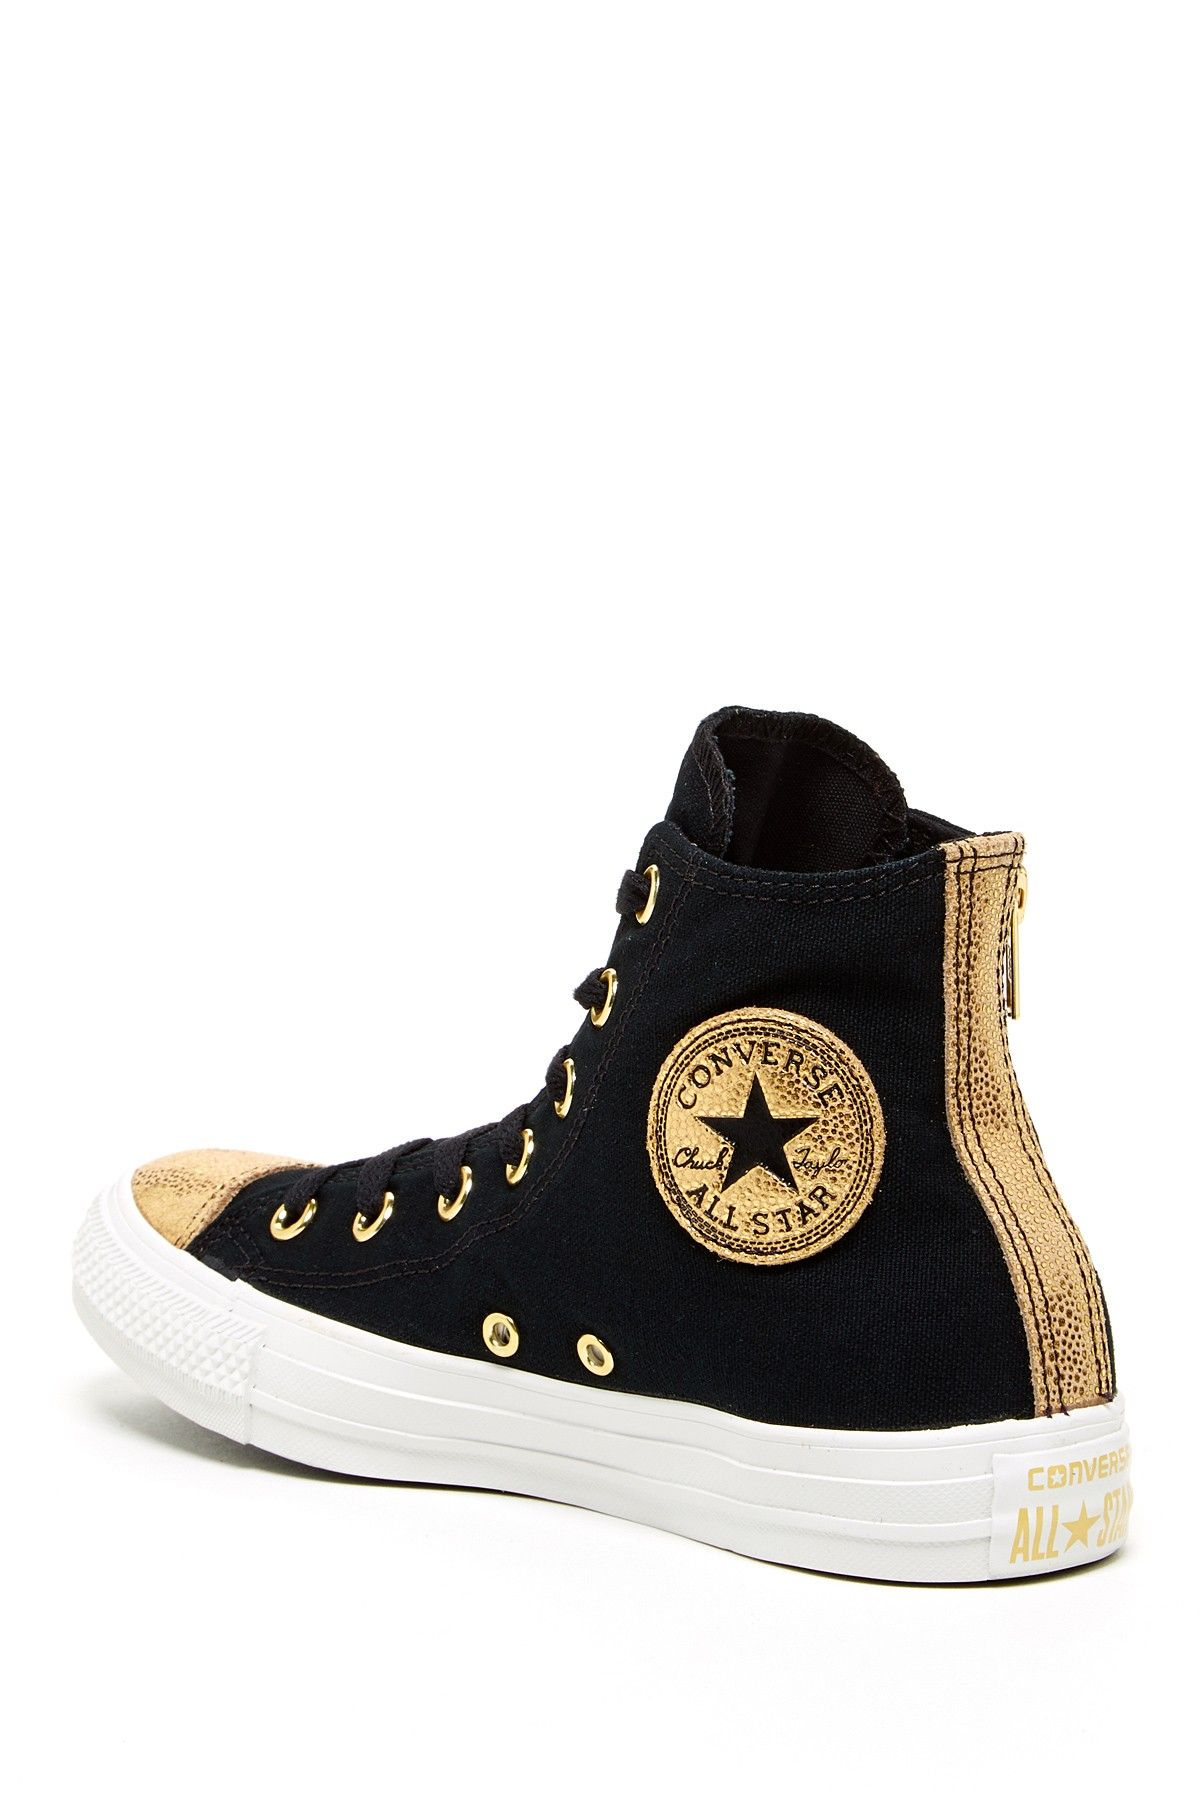 35c3264b4018 Chuck Taylor Side Zip High Top Sneaker by Converse on  nordstrom rack